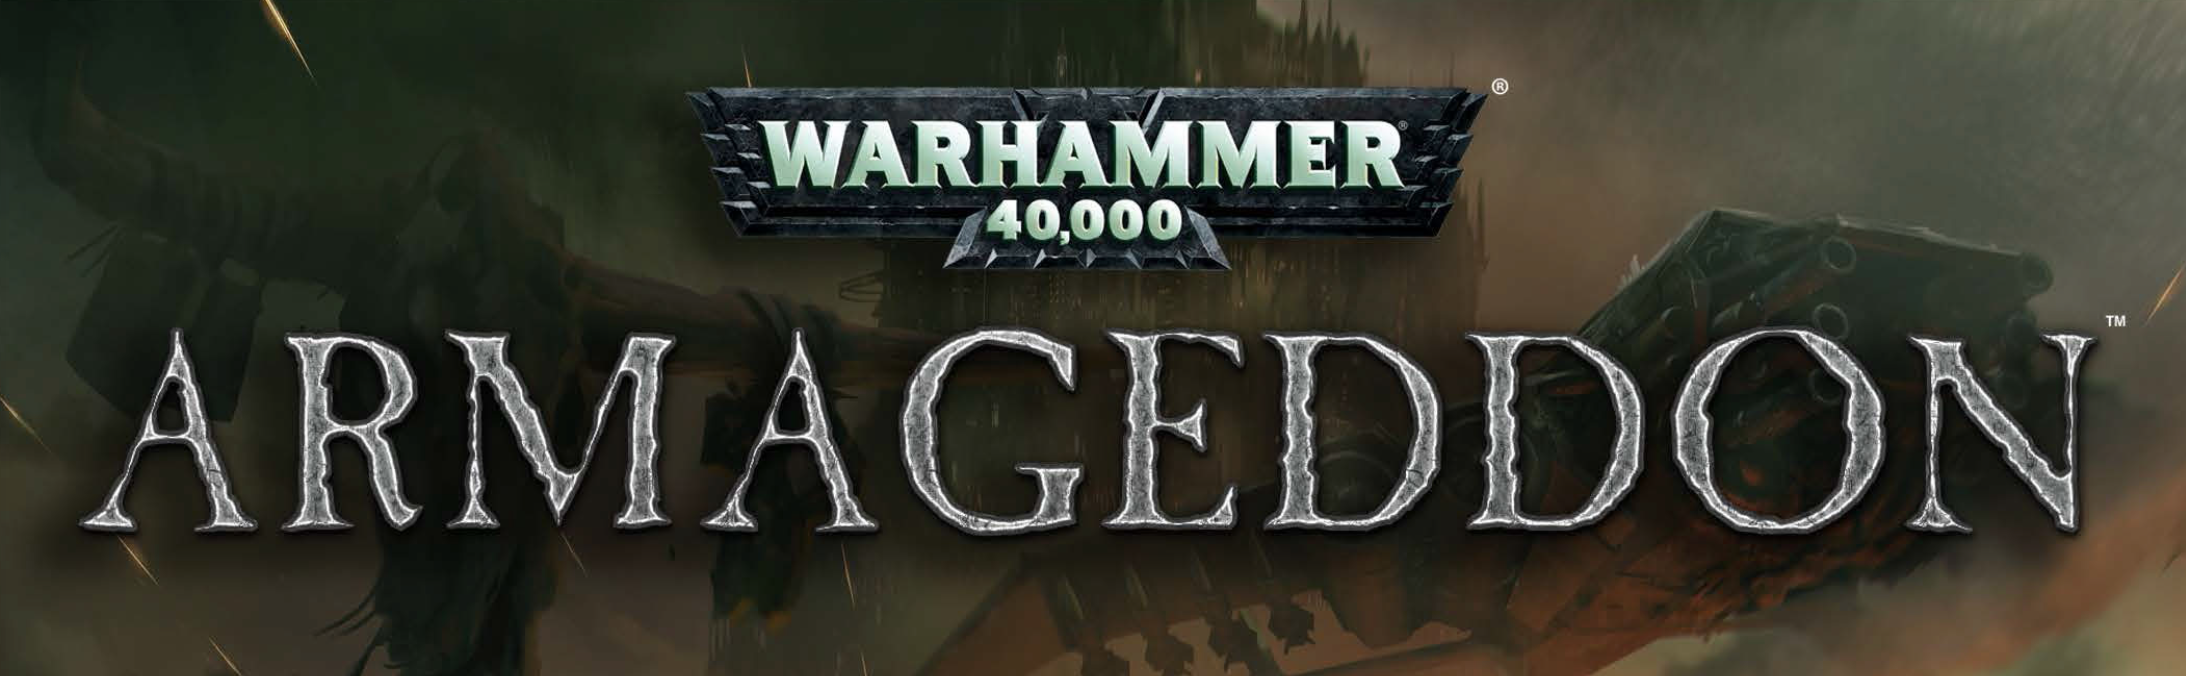 Warhammer 40,000: Armageddon adds a great new campaign